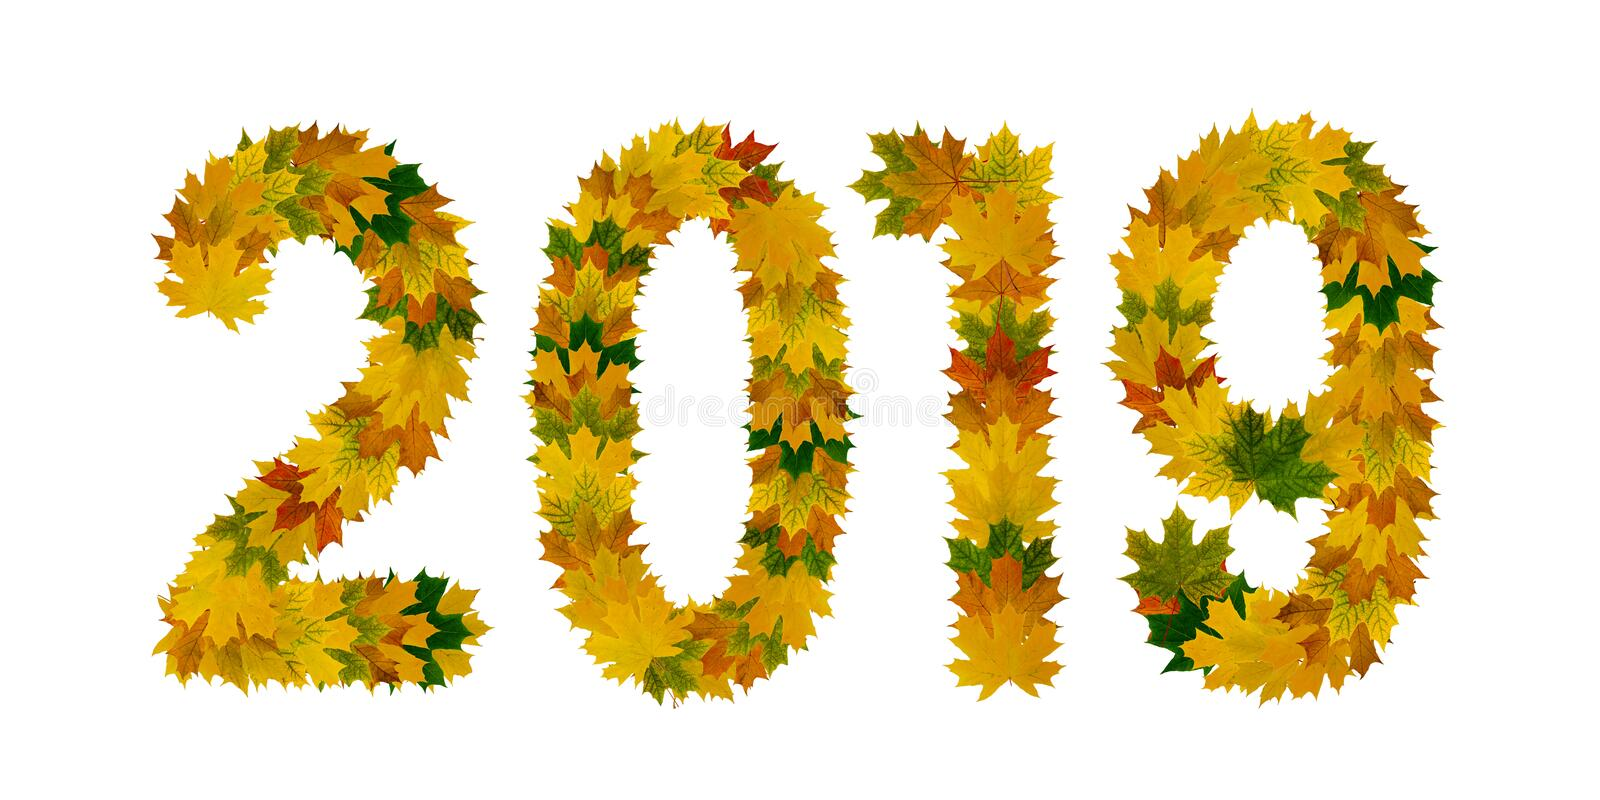 Figures 2019 from yellow, green and orange maple autumn leaves close-up. Isolate on white background stock images